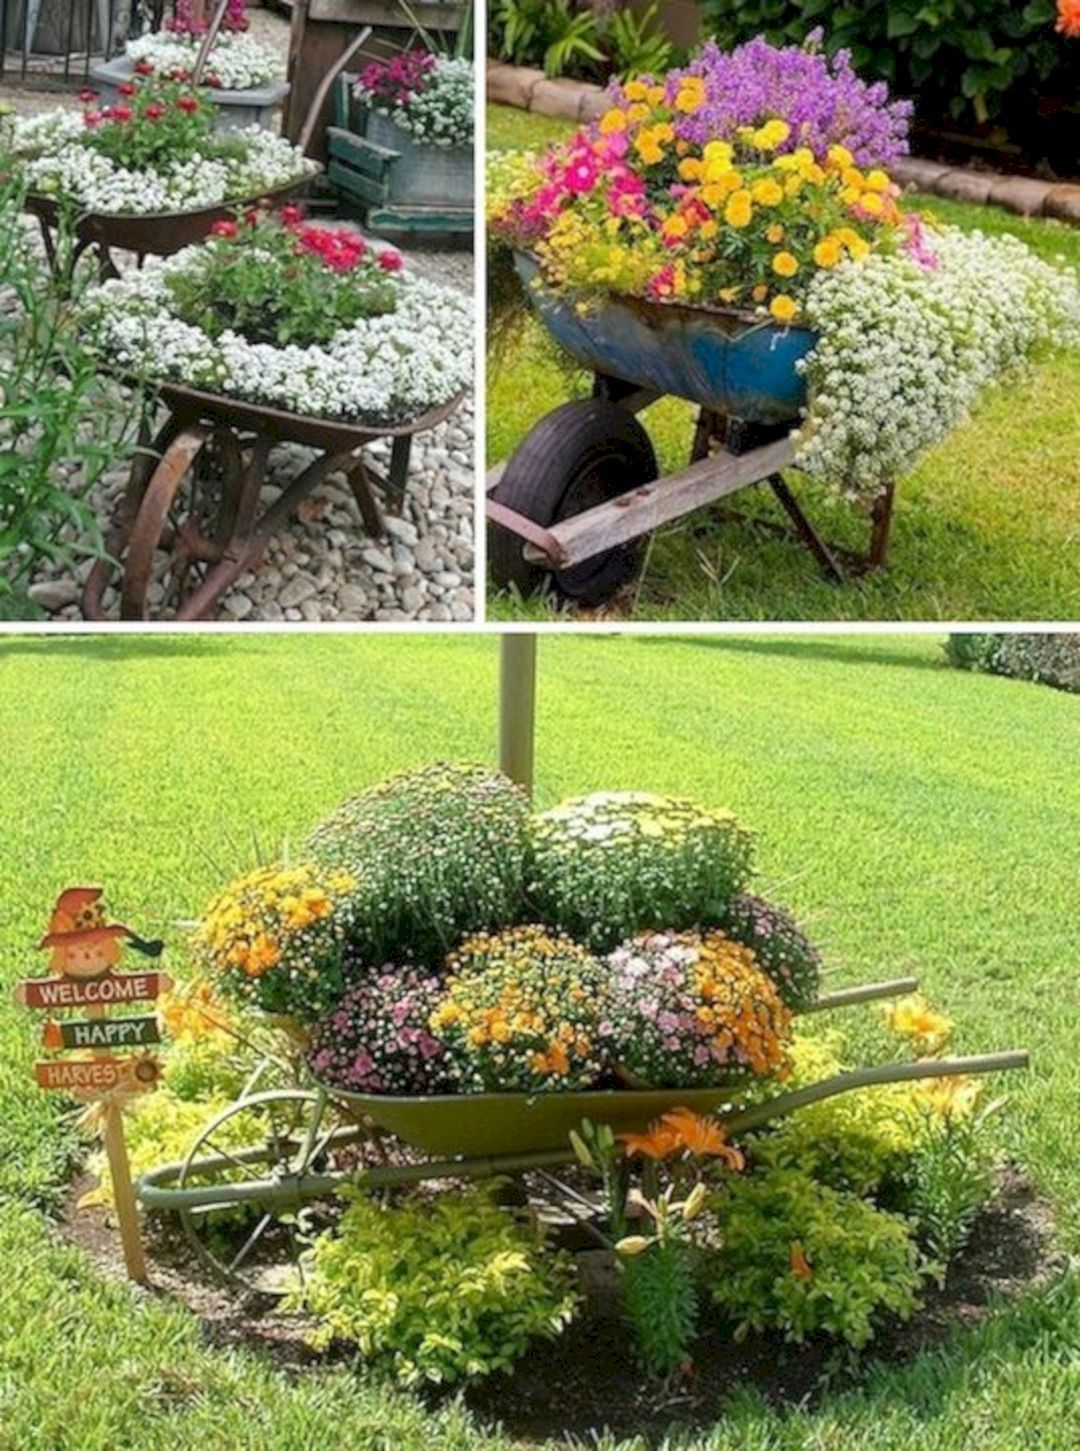 Increase You Home Beauty With Creative Garden Decor: 25+ Best Ideas ...